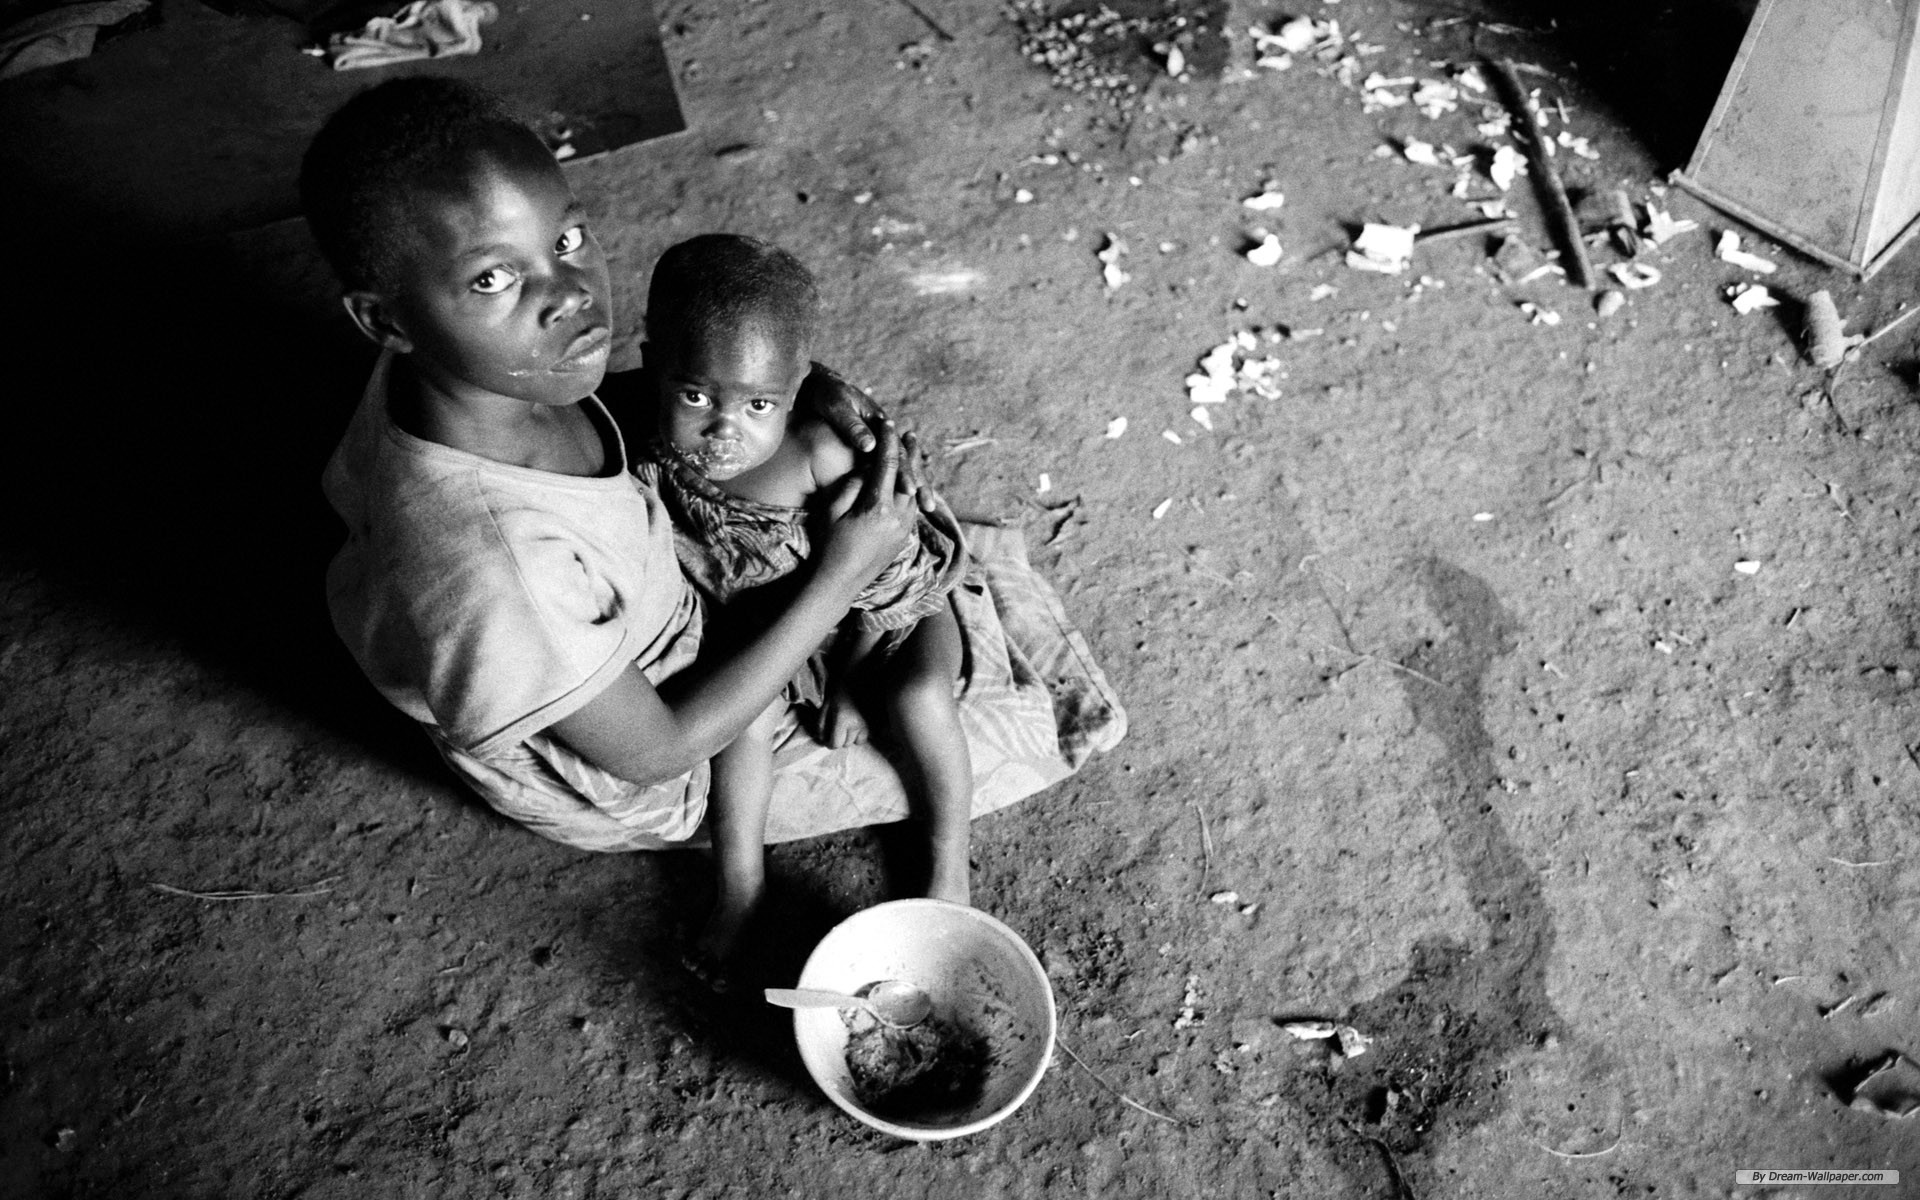 surviving in poverty Poverty is the scarcity or the lack of a certain (variant) amount of material possessions or money poverty is a multifaceted concept, which may include social, economic, and political elements absolute poverty, extreme poverty, or destitution refers to the complete lack of the means necessary to meet basic personal needs such as food, clothing and shelter.